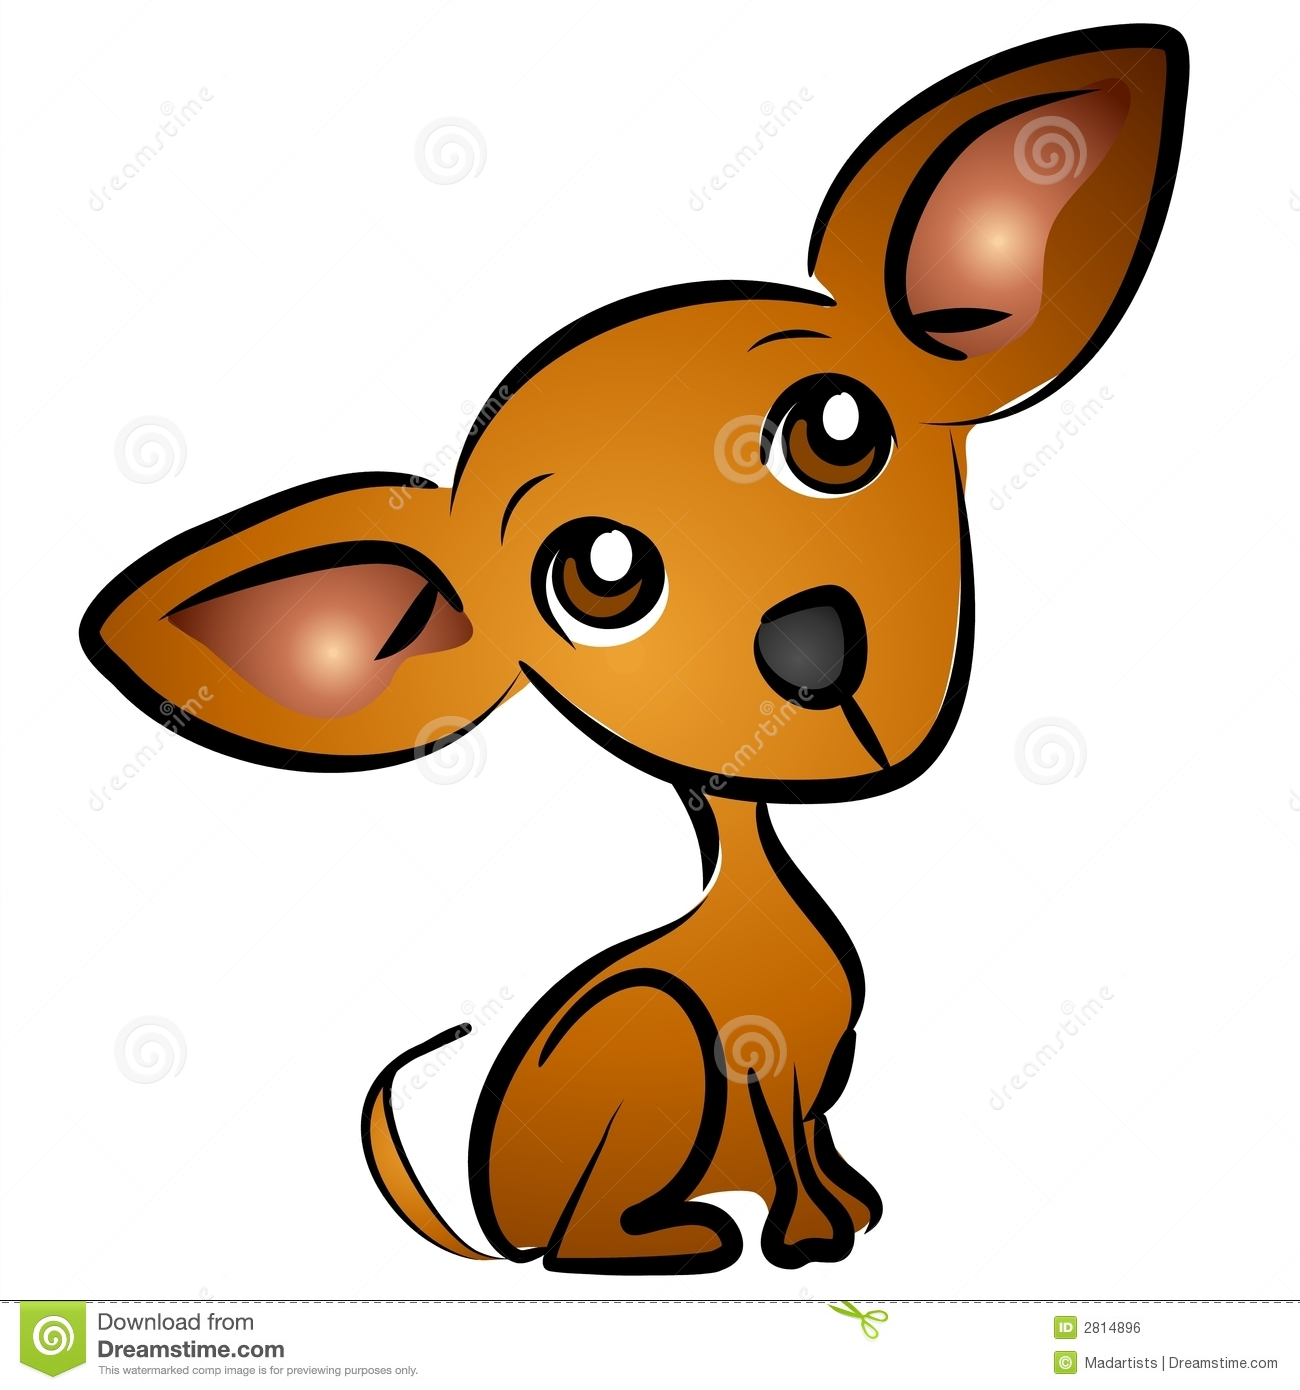 Clip Art Free Dog Clip Art cartoon chihuahua dog clip art royalty free stock image art